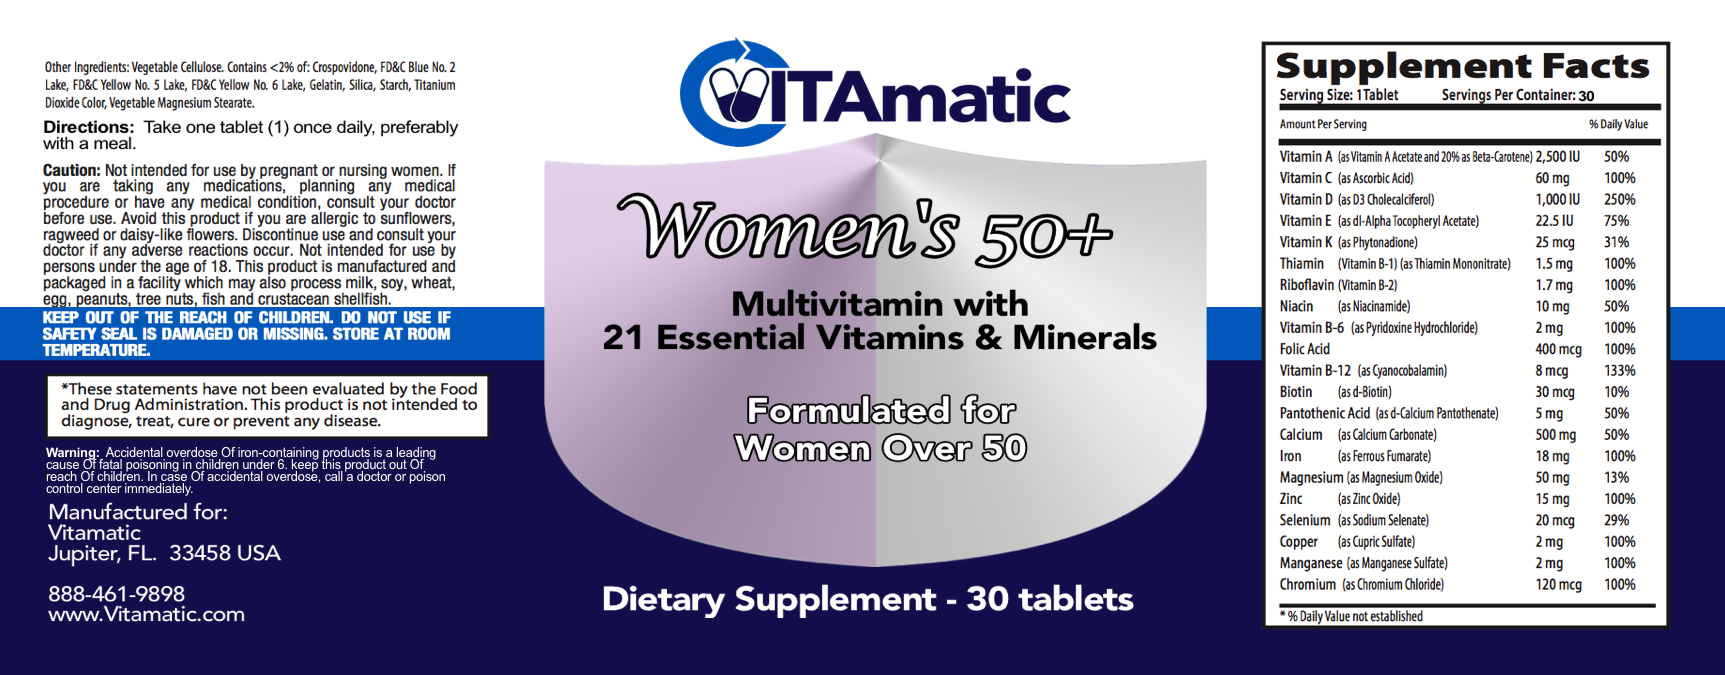 womens_over50multivitamin_label-1